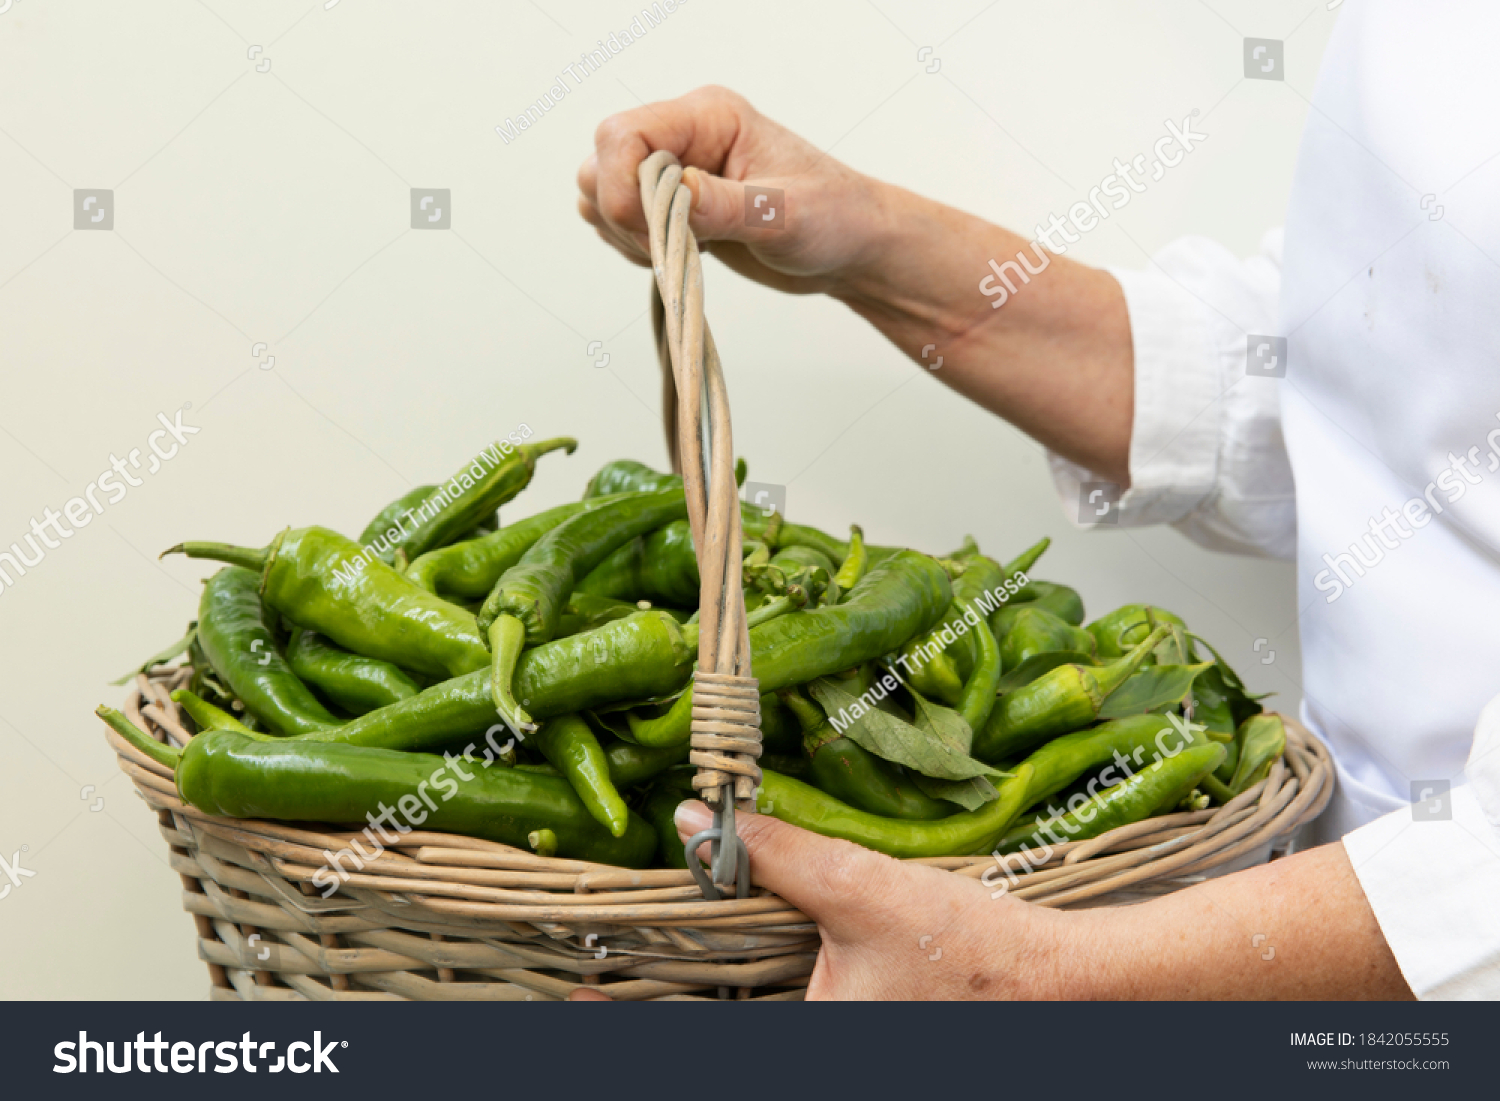 Woman's hands with a basket of green peppers, on white background